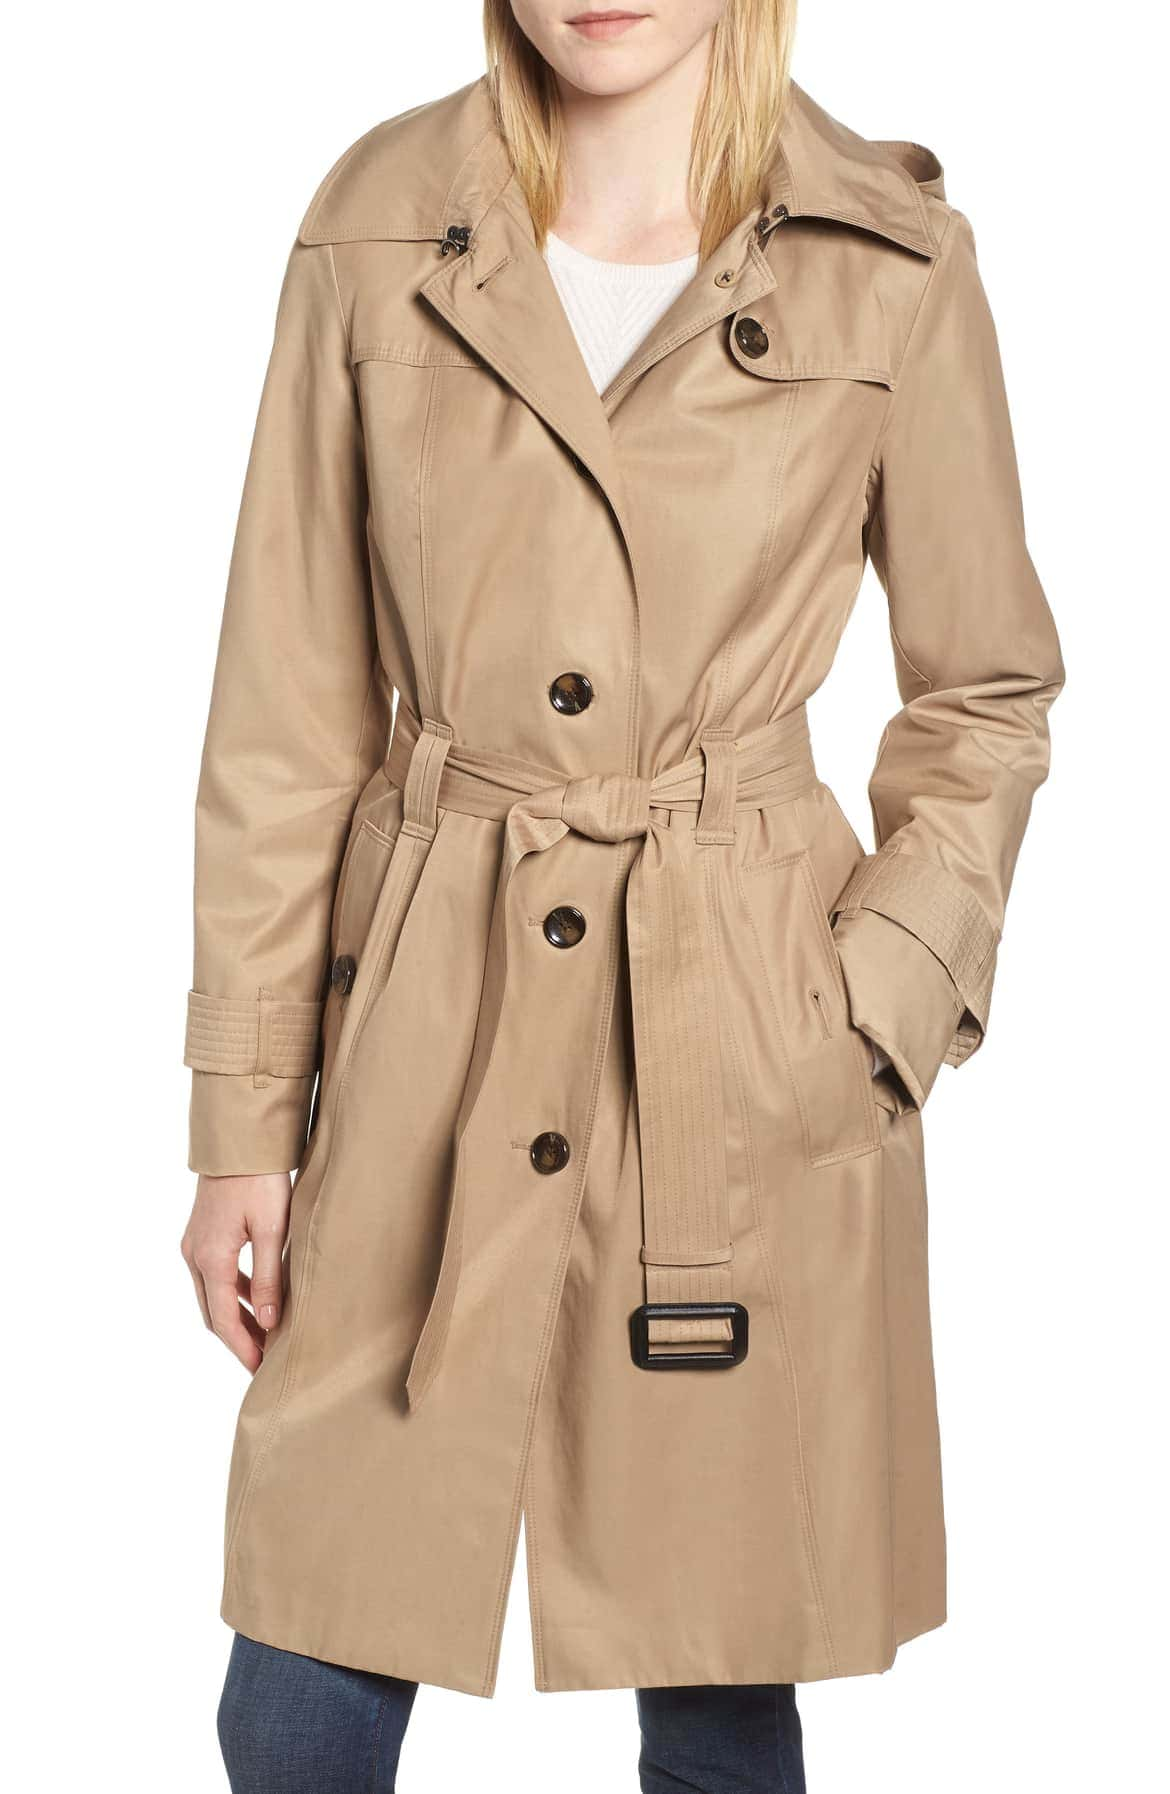 single breasted woman's trench coat